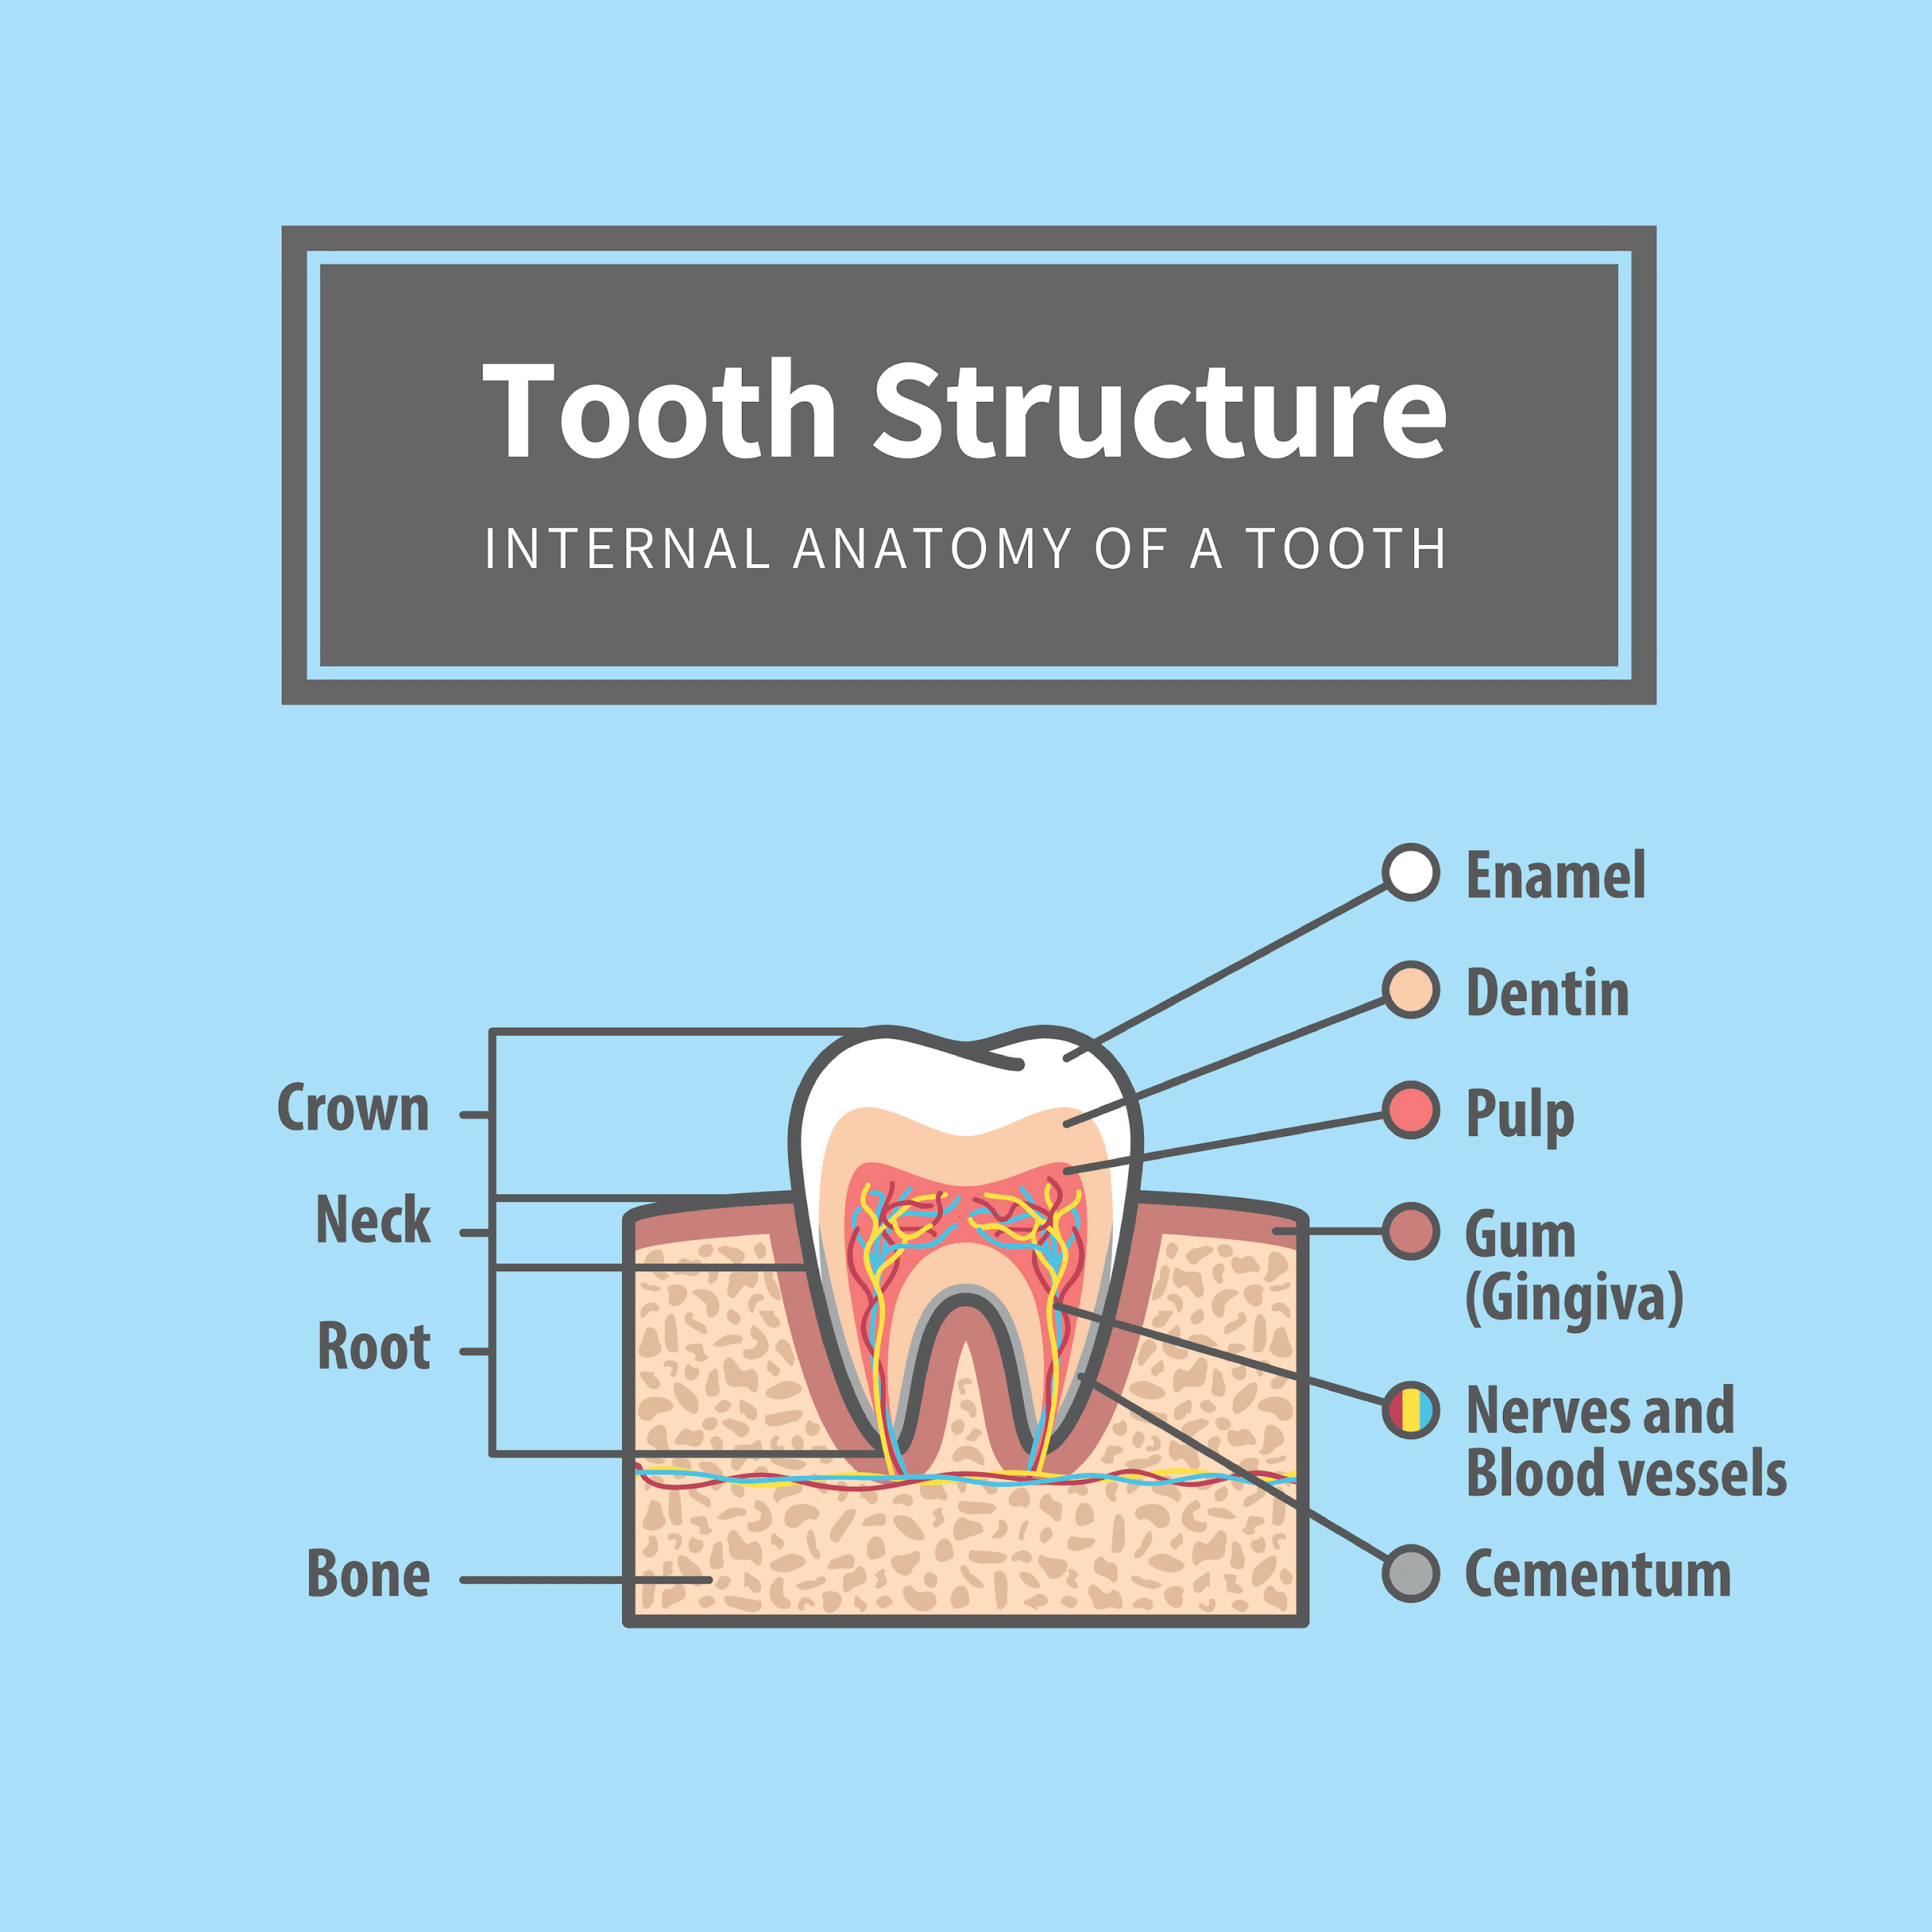 Illustration depicting the internal structure and layers of a tooth